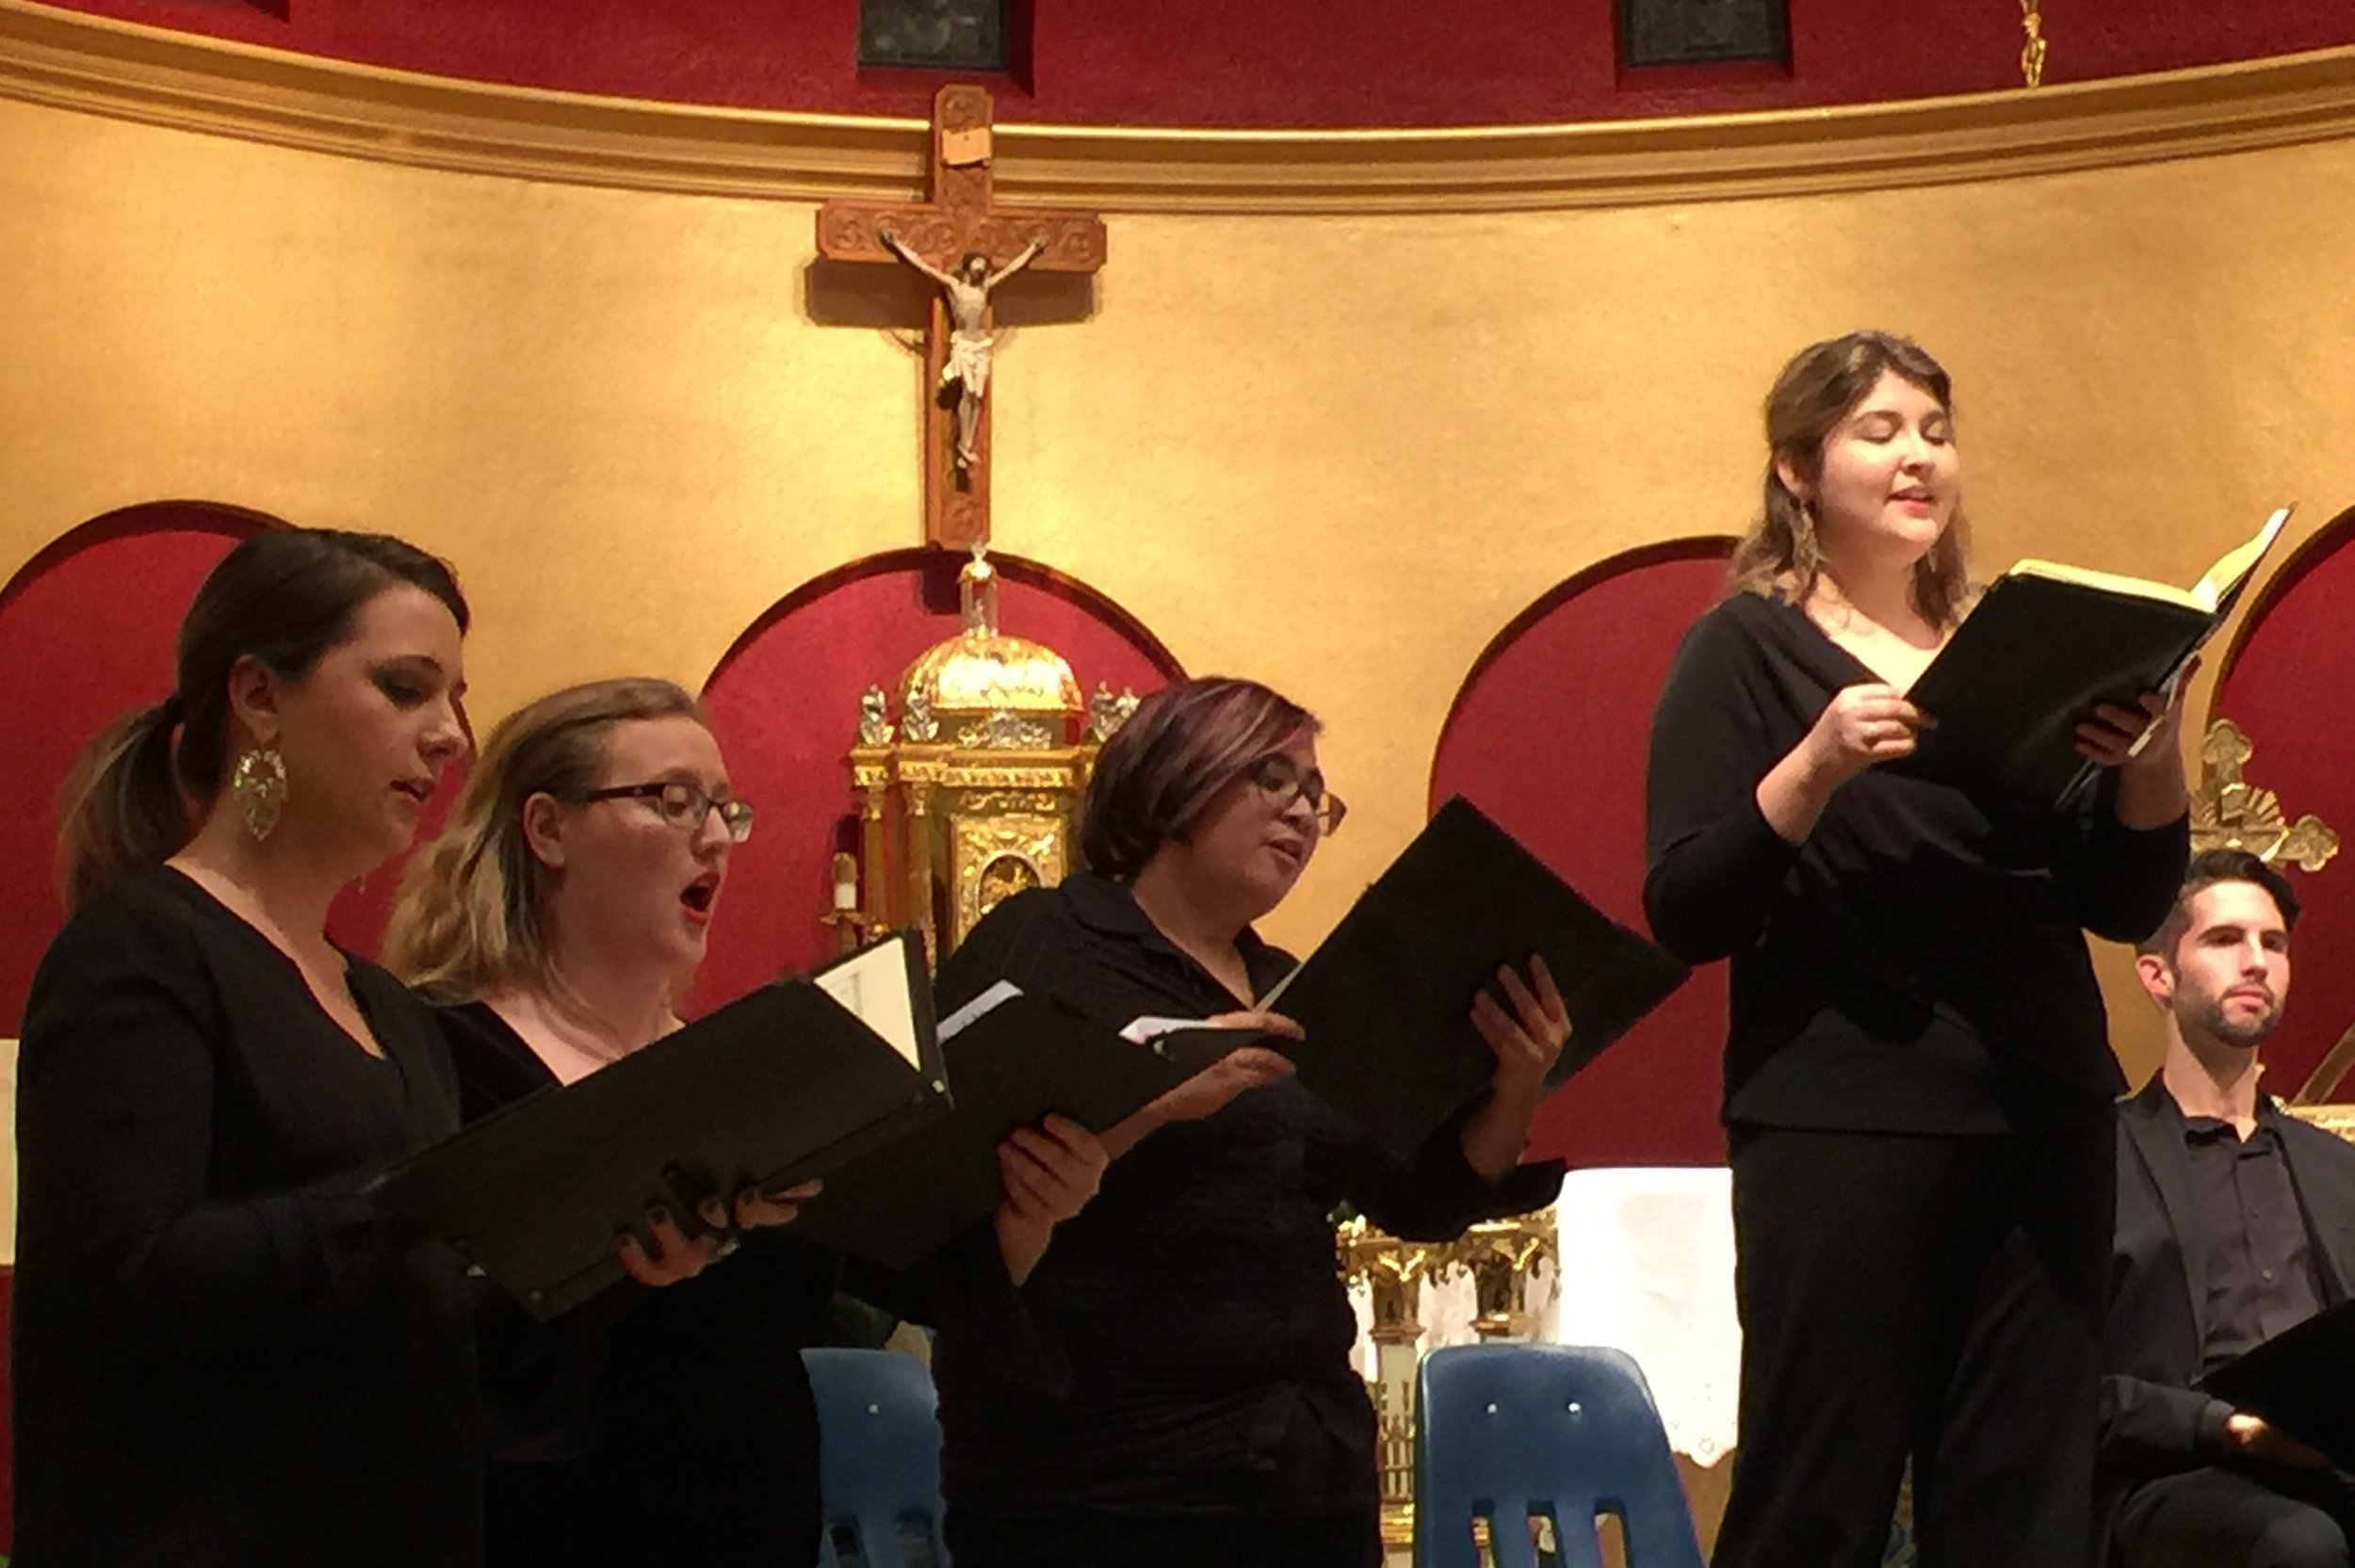 Left to right, Julianna Emanski, solo soprano; Amanda Jacobsen, soprano; Francesca Cacal, alto; Hannah Ceniseros, solo alto; Barrett Radziun, tenor soloist, seated.